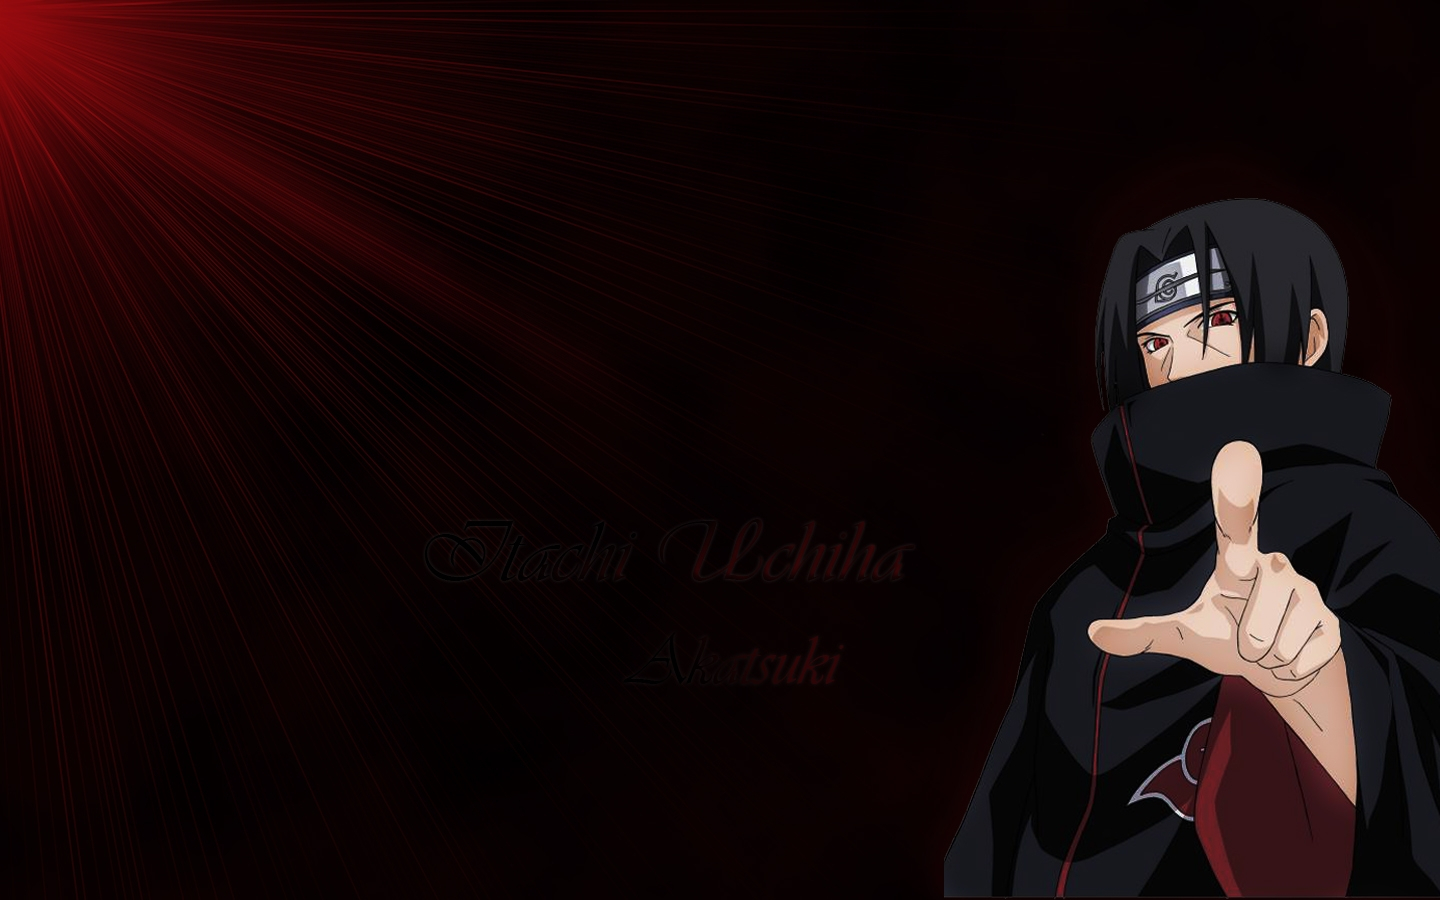 Free Download Itachi Uchiha Wallpaper 1600215900 167123 Hd Wallpaper Res 1600x900 For Your Desktop Mobile Tablet Explore 77 Itachi Background Uchiha Wallpaper Itachi Uchiha Wallpaper Itachi Wallpapers Hd